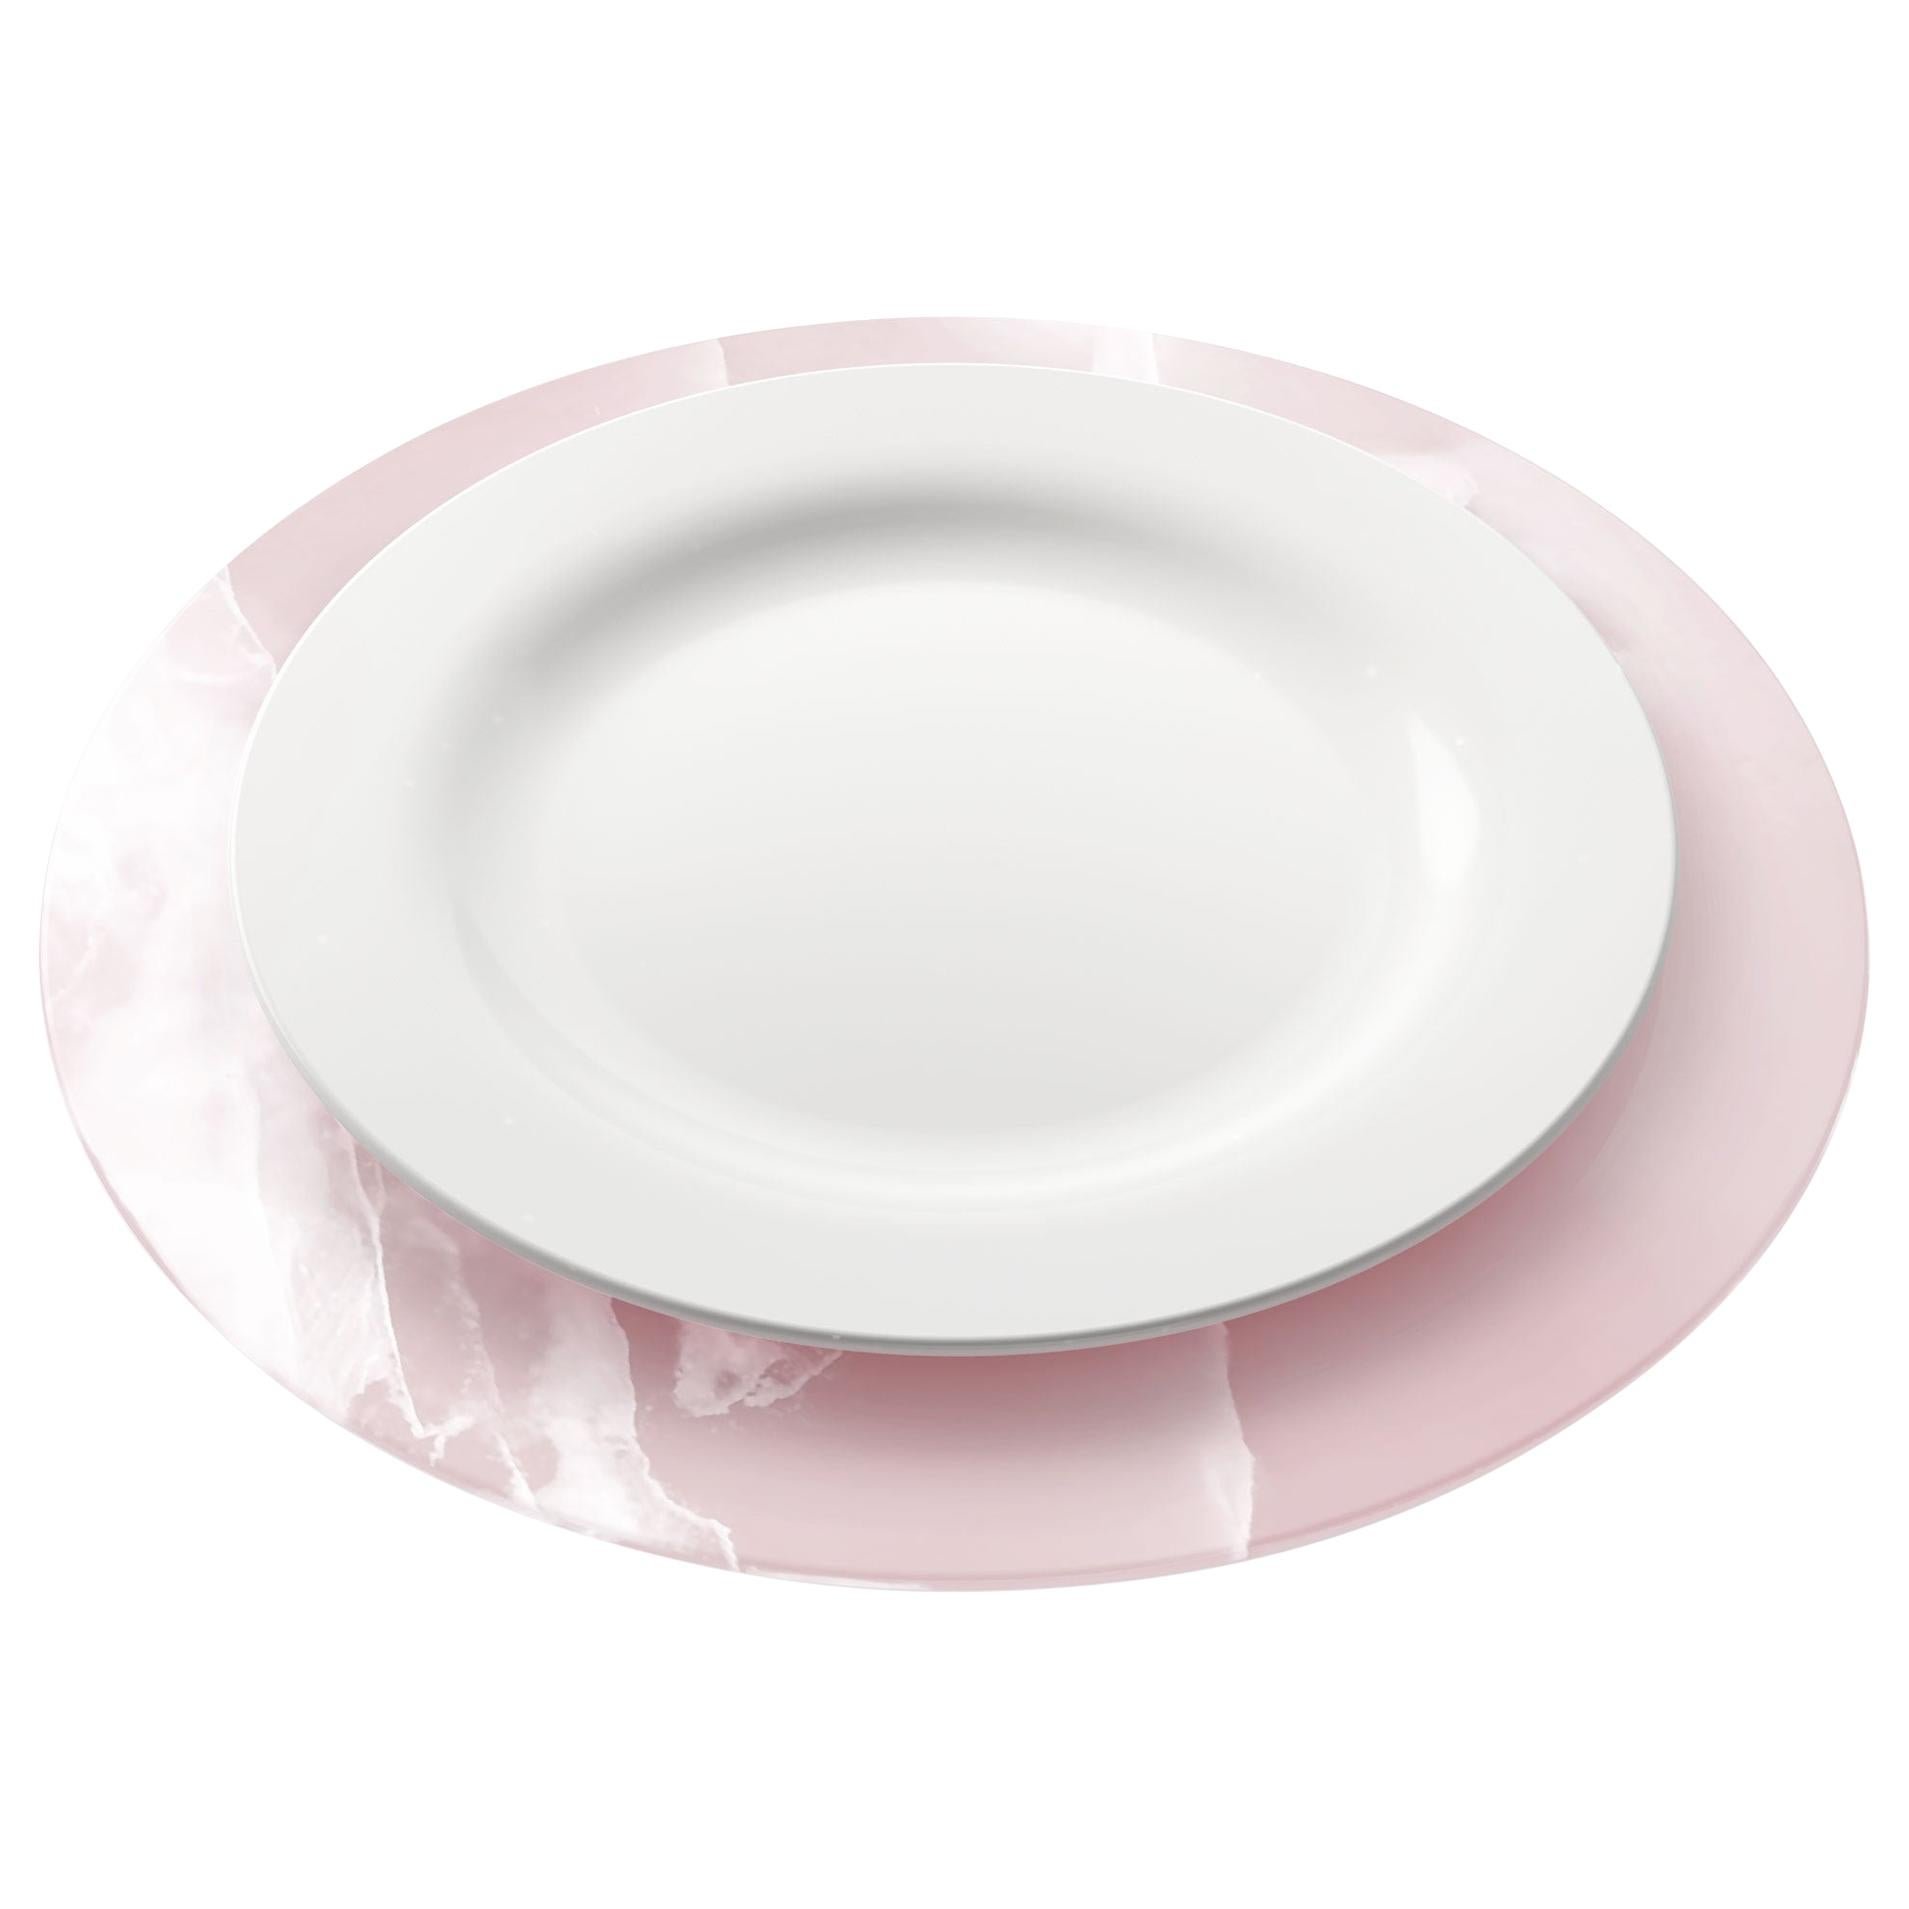 Set of 6 Charger Plates in Solid Pink Onyx Design by Pieruga Marble, Italy